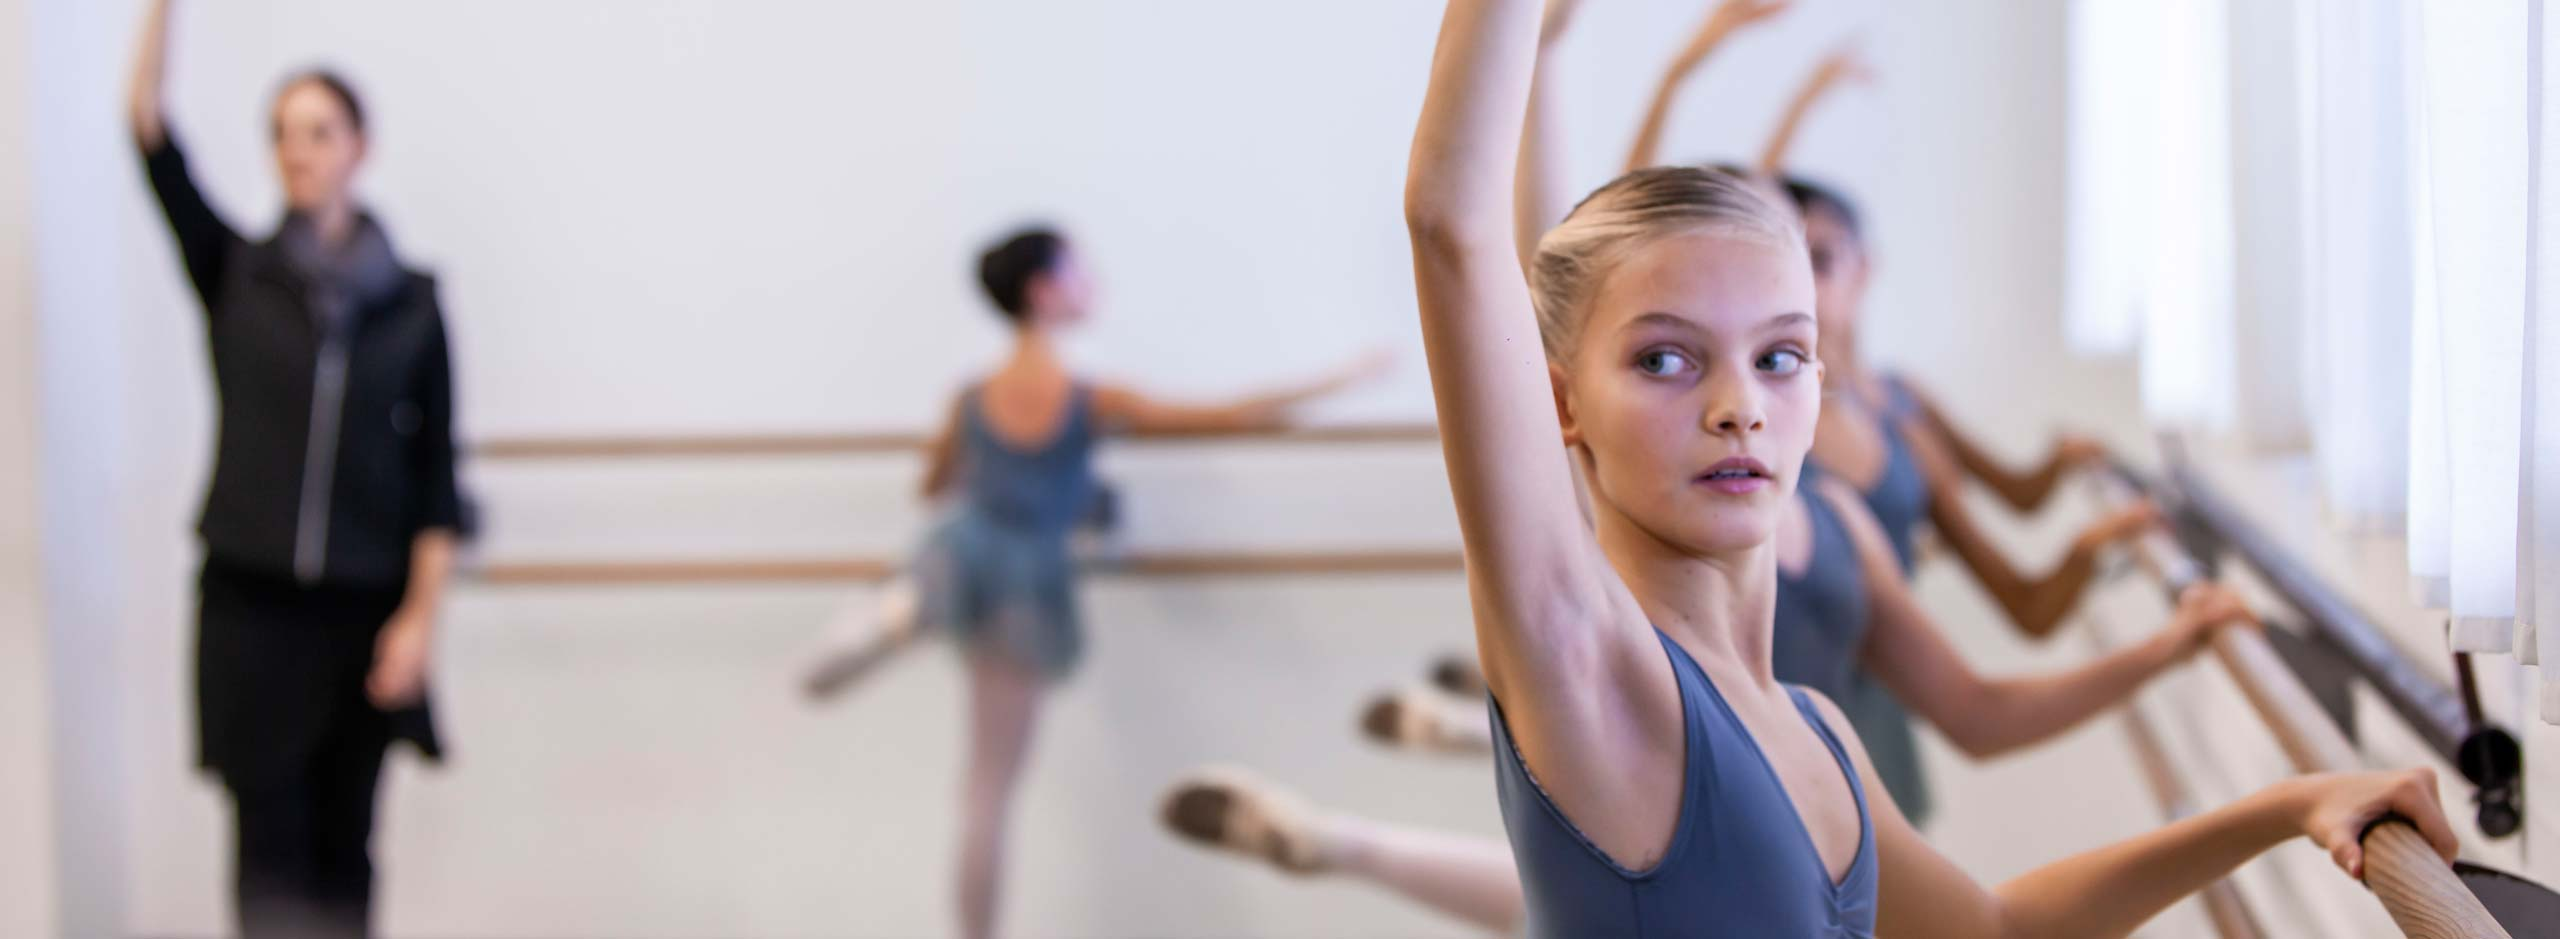 Auditions for admission to the School of Dance